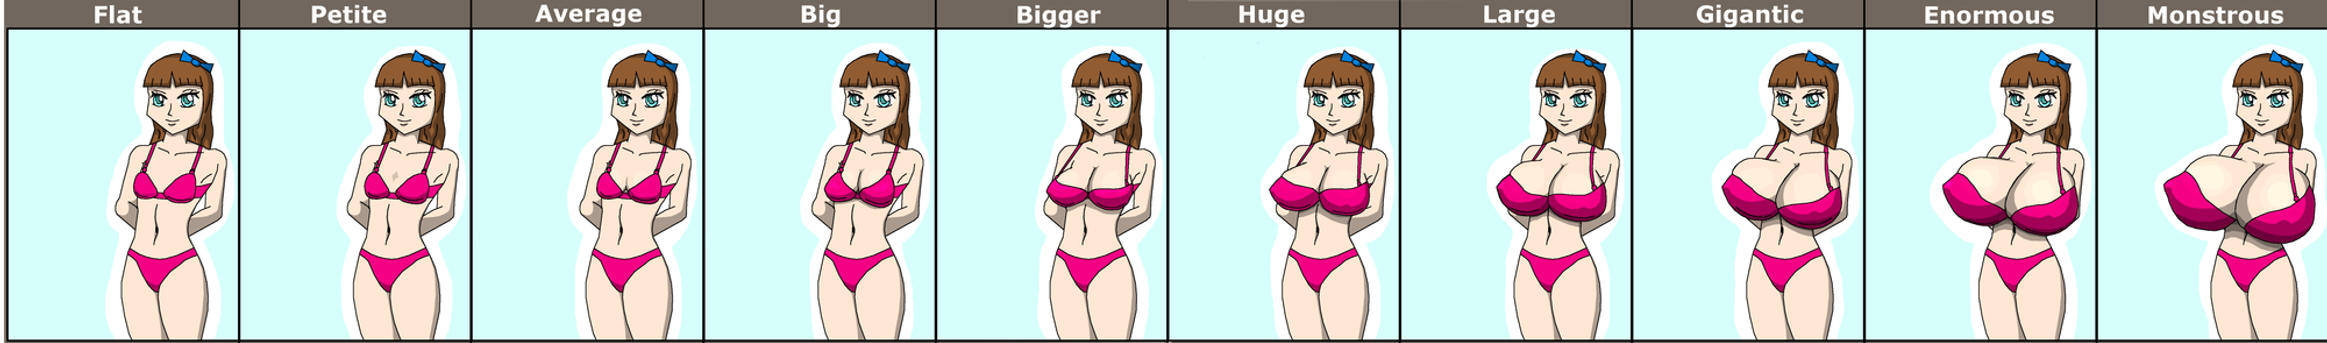 Breasts  All Shapes amp Sizes Database  rbreastgallery